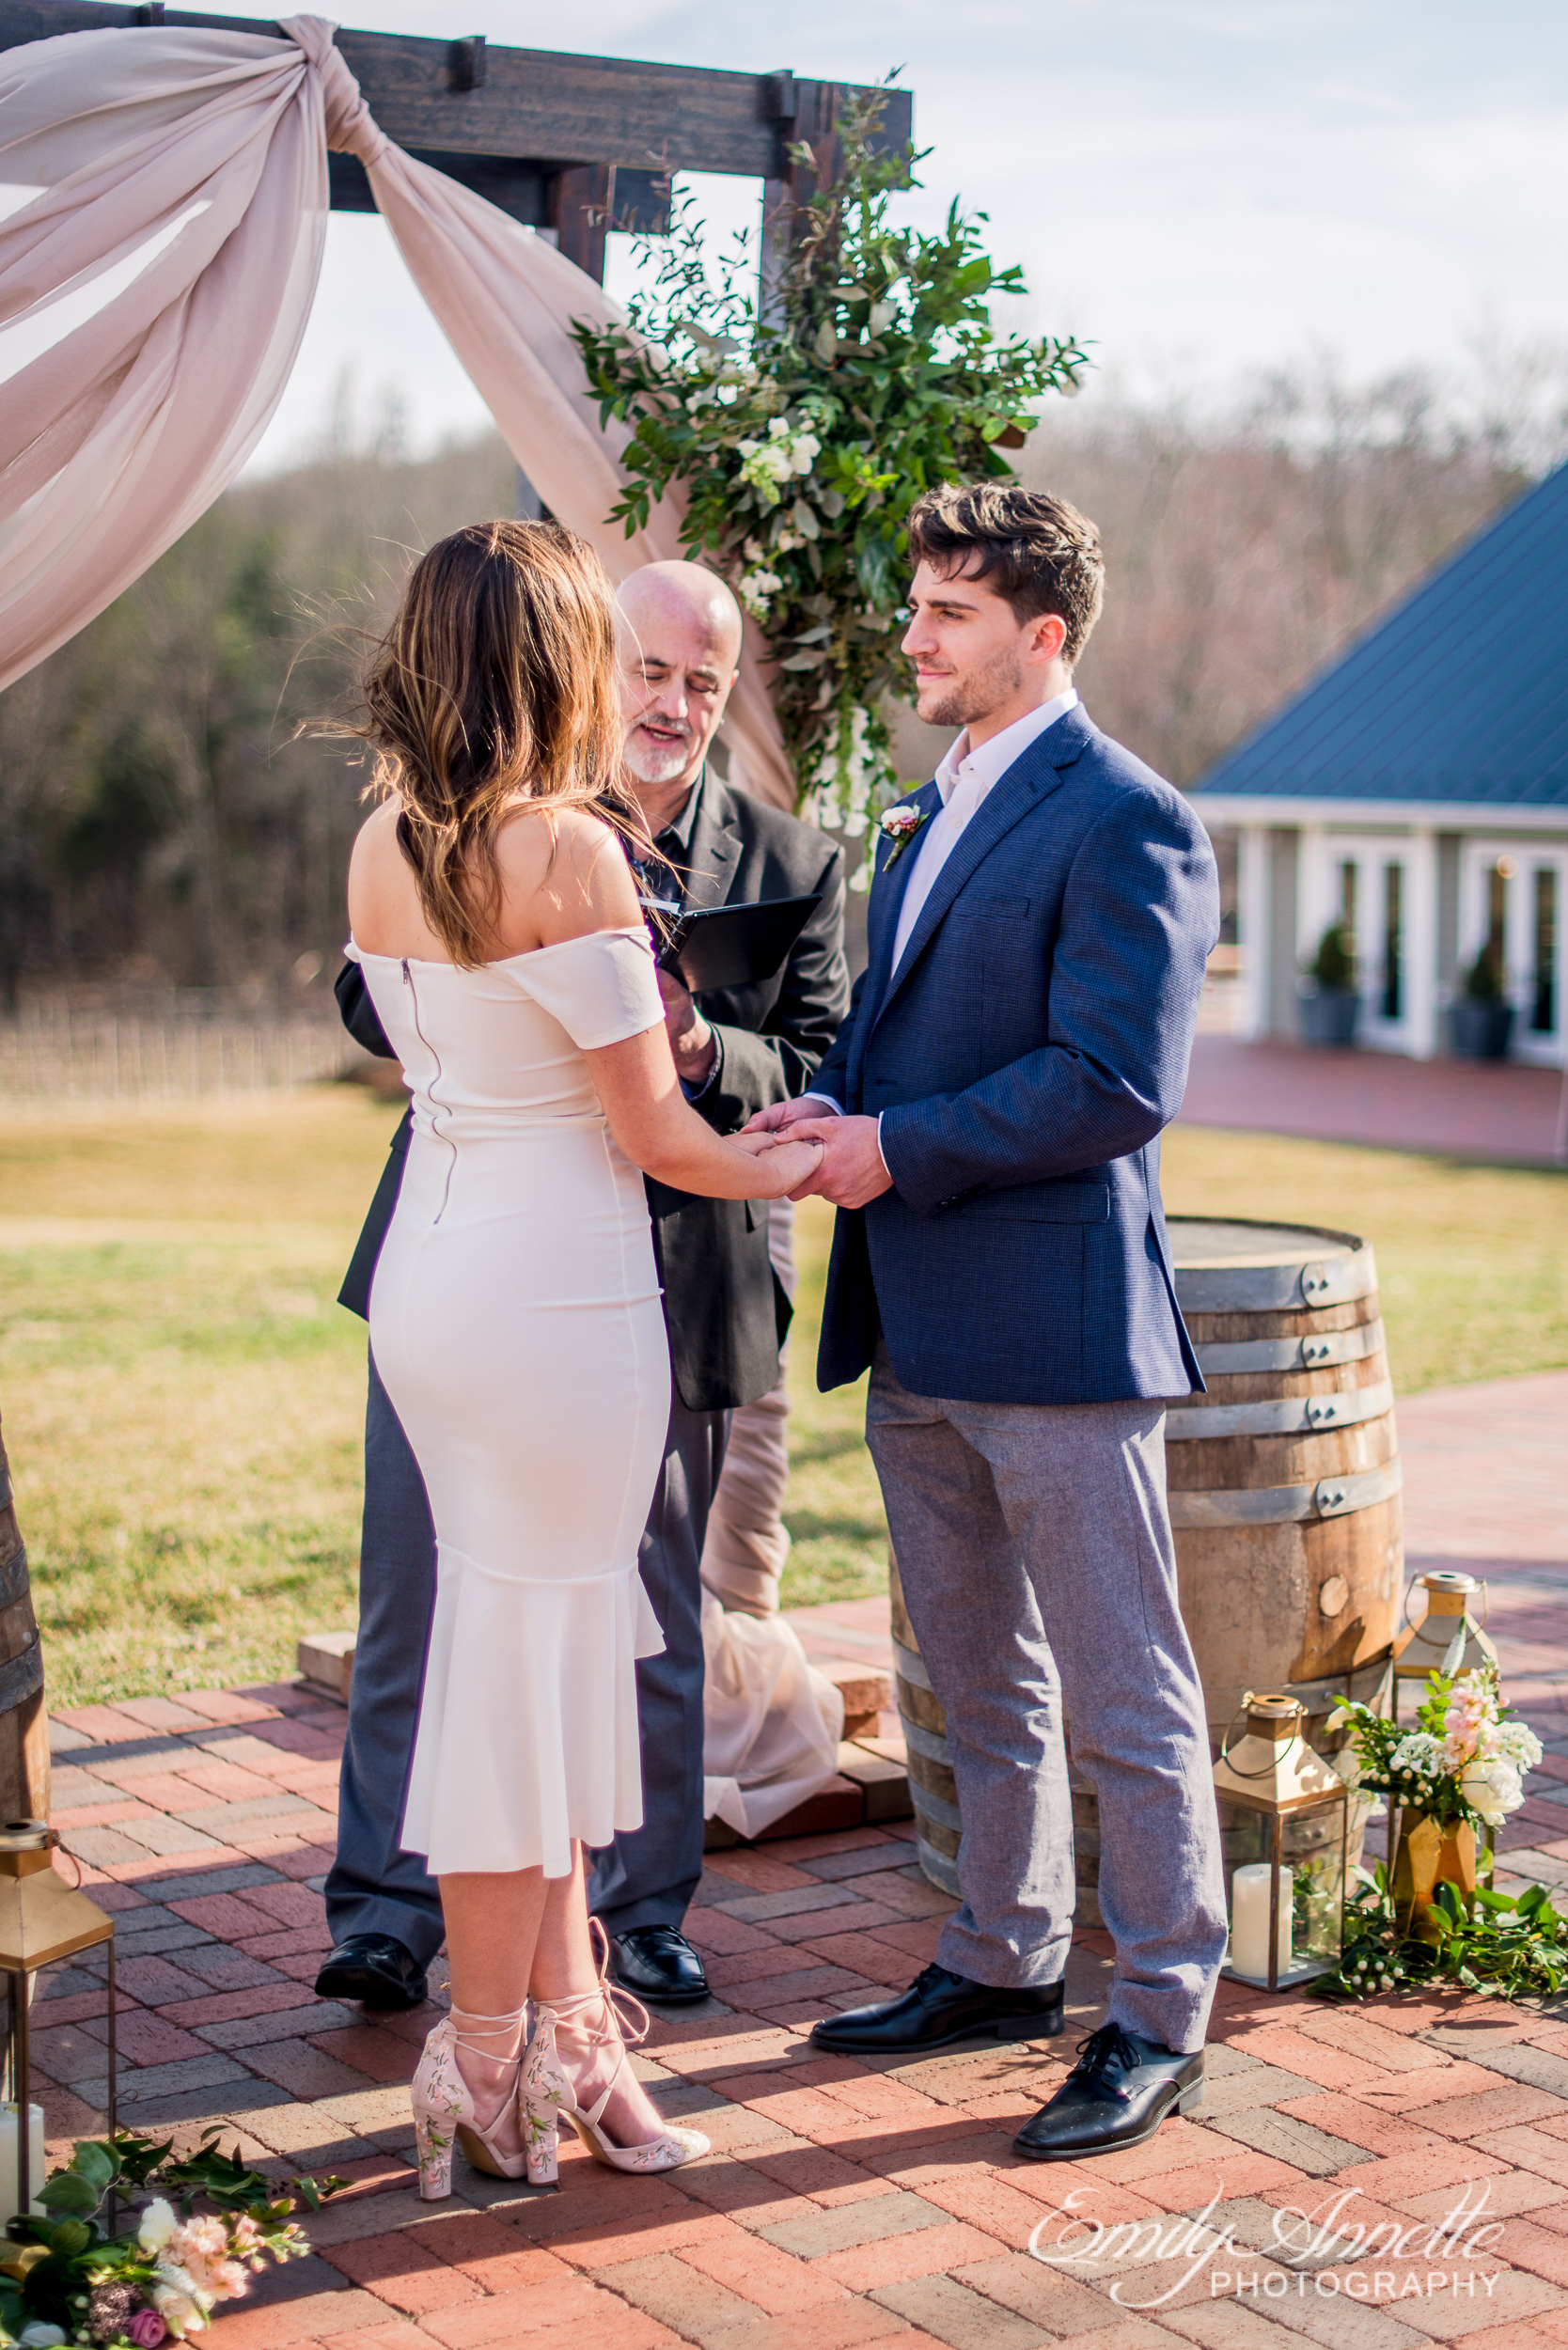 The bride and groom stand at the altar as the groom looks at his bride during their wedding ceremony at Fleetwood Farm Winery in Leesburg, Virginia